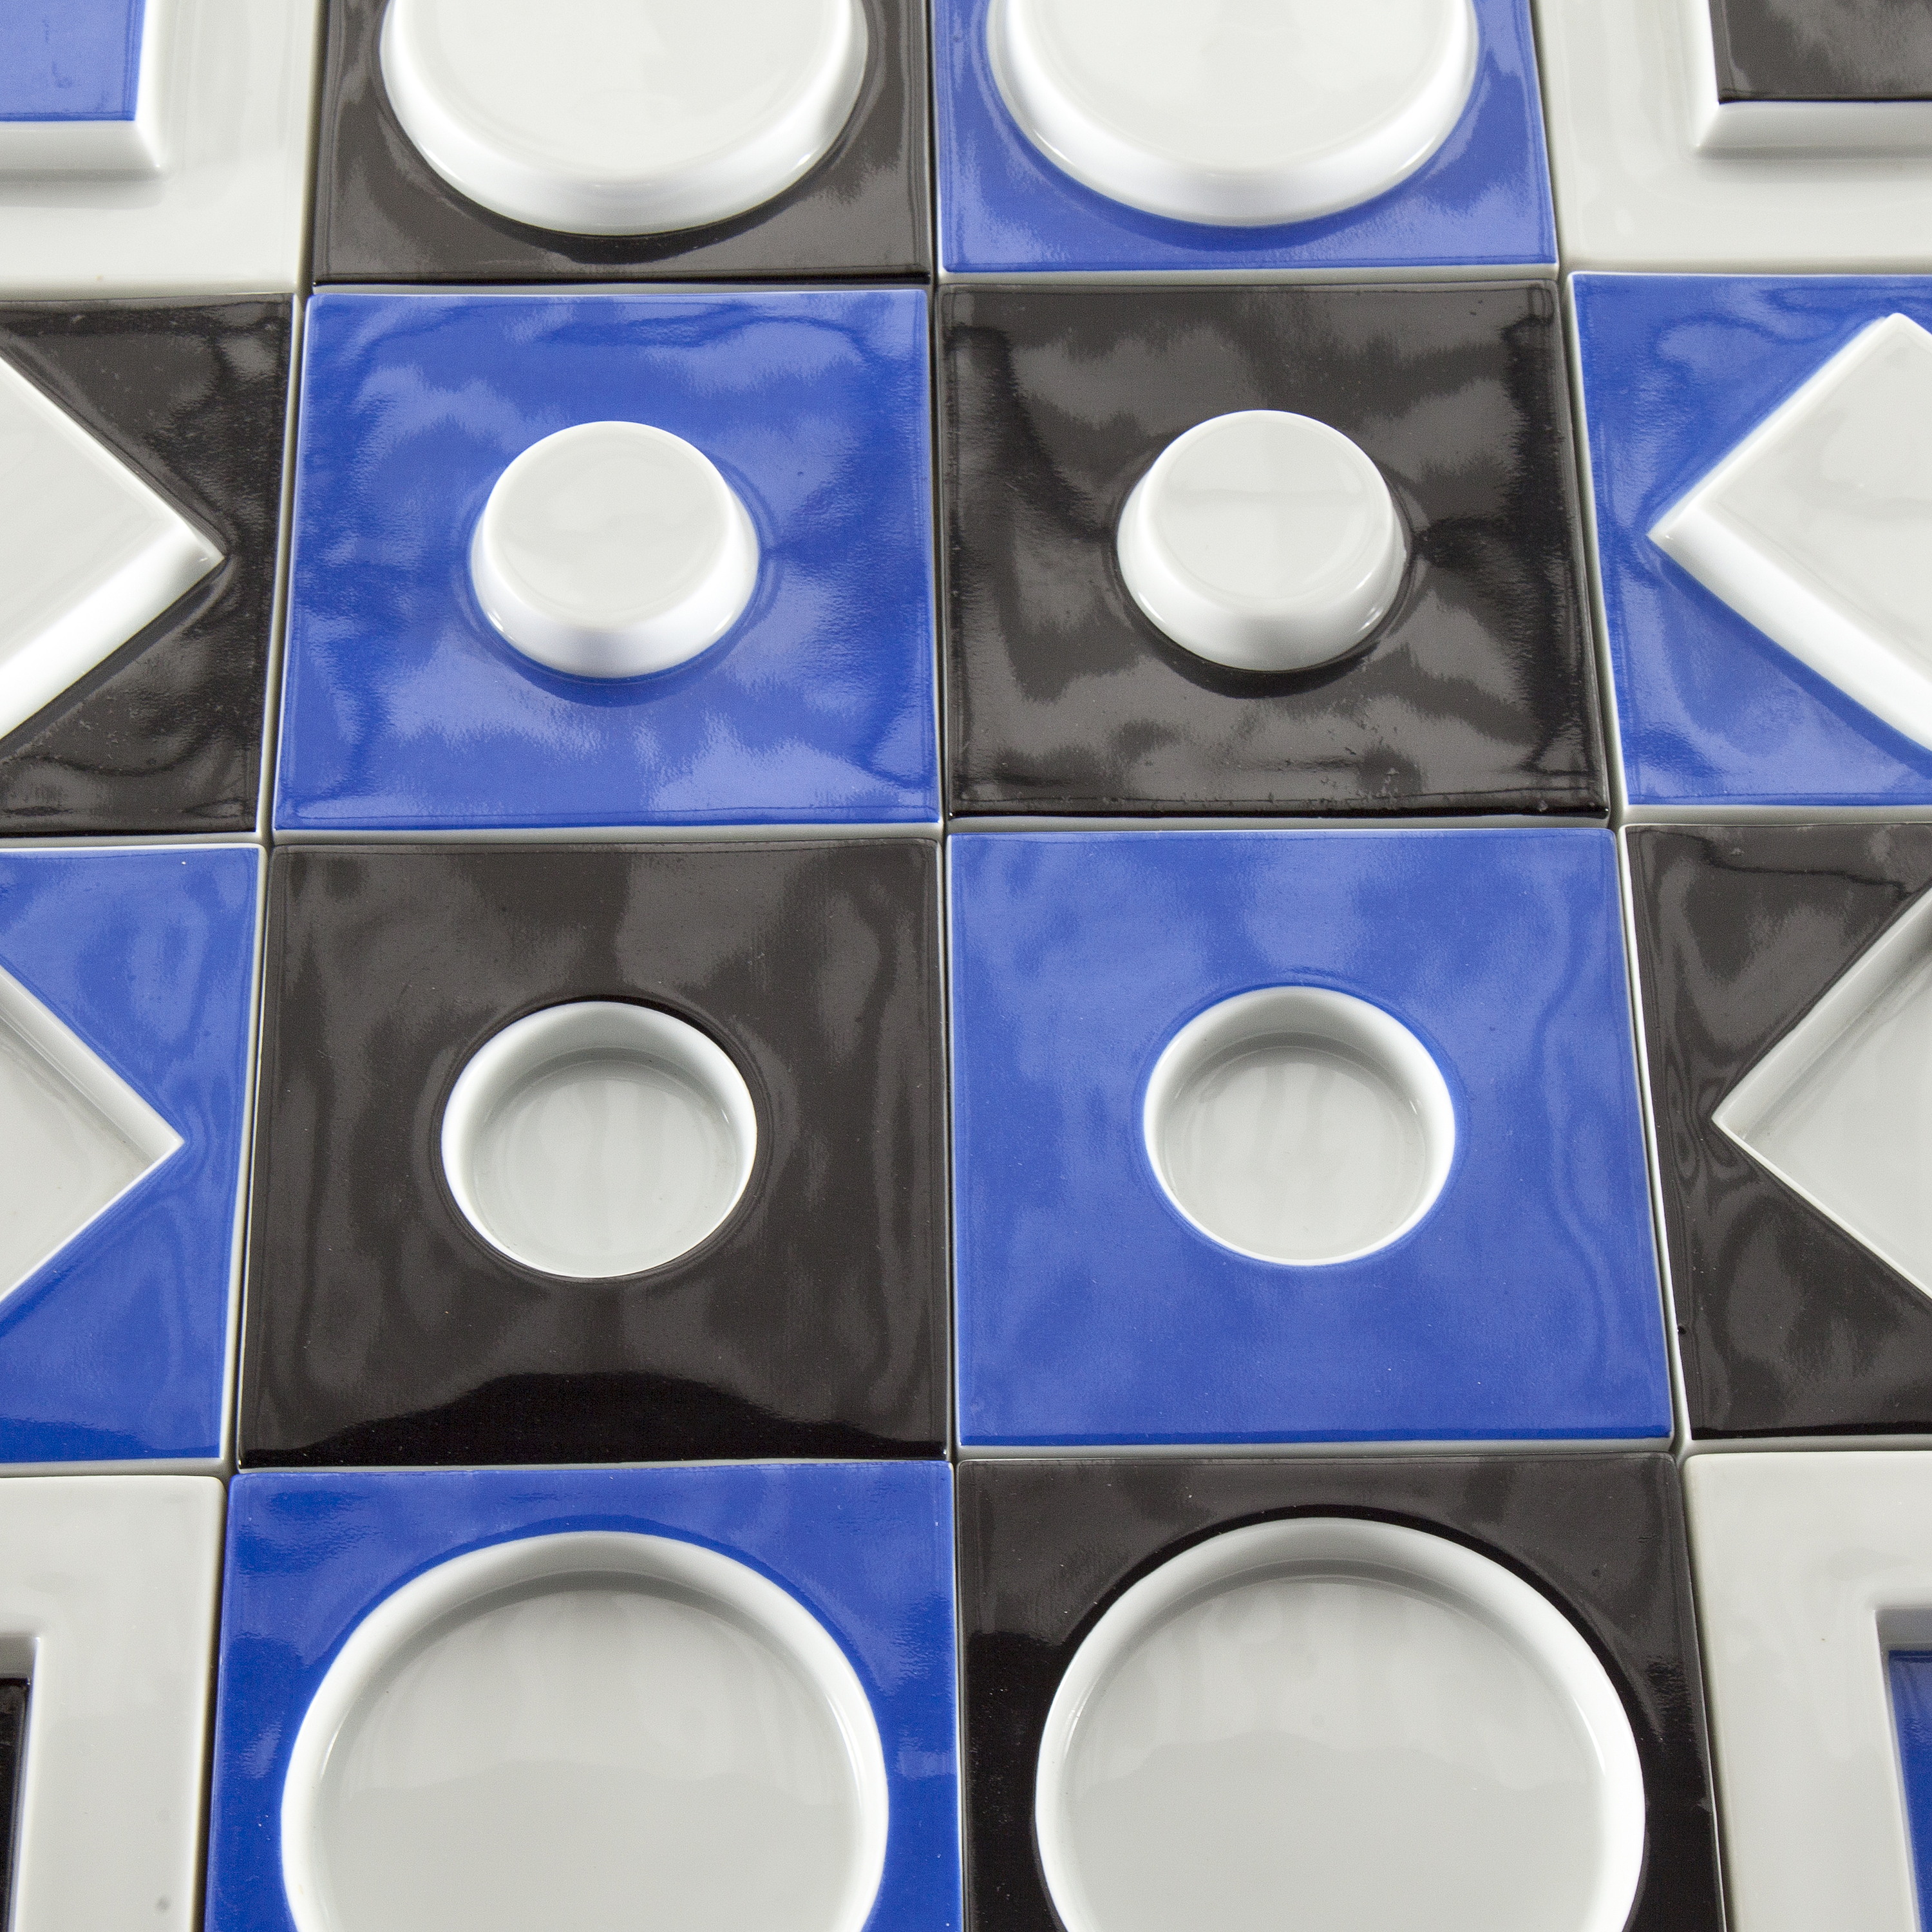 A VICTOR VASARELY, porcelain relief for Rosenthal studio